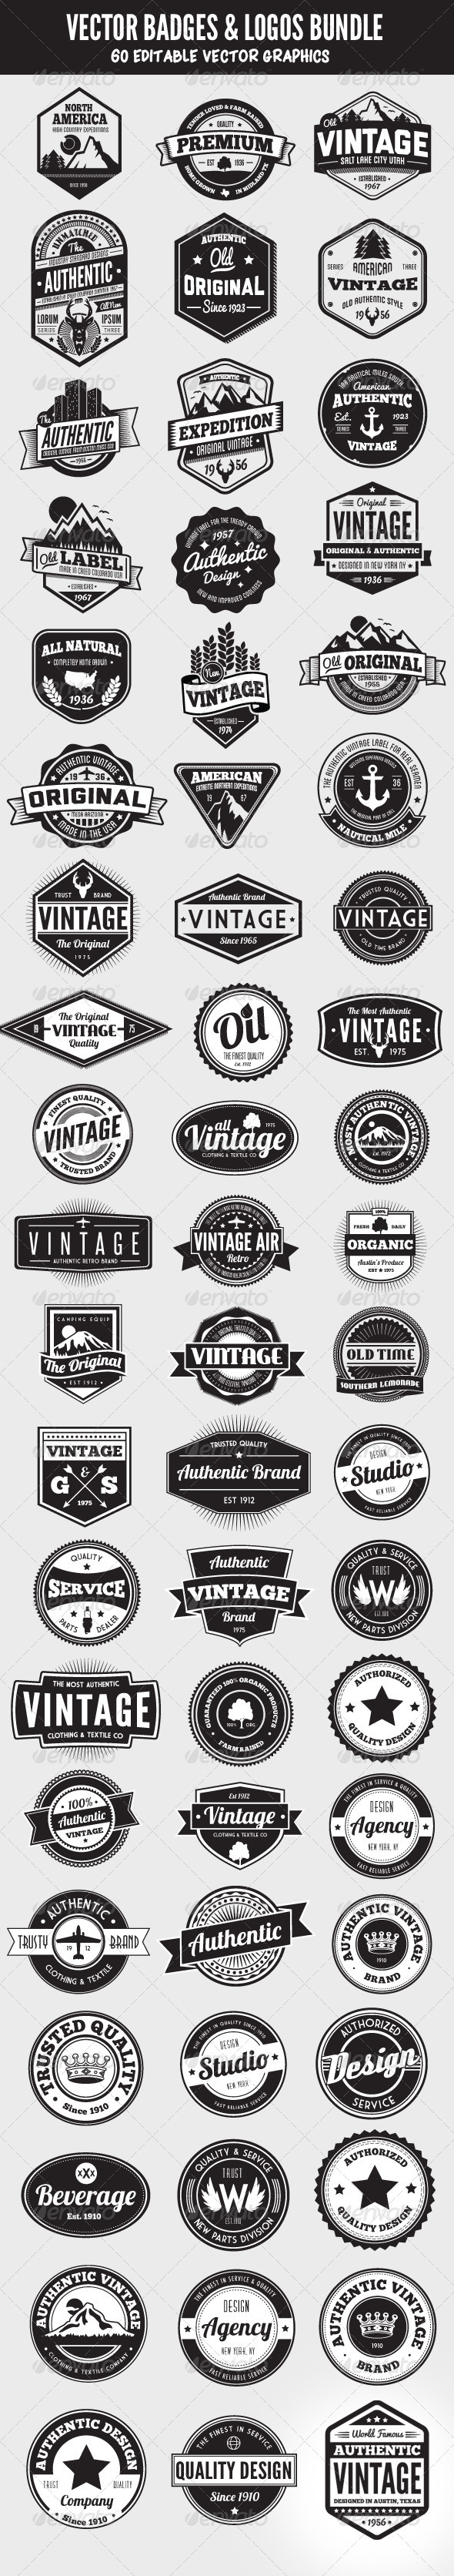 GraphicRiver 60 Badges and Logos Bundle 5657963